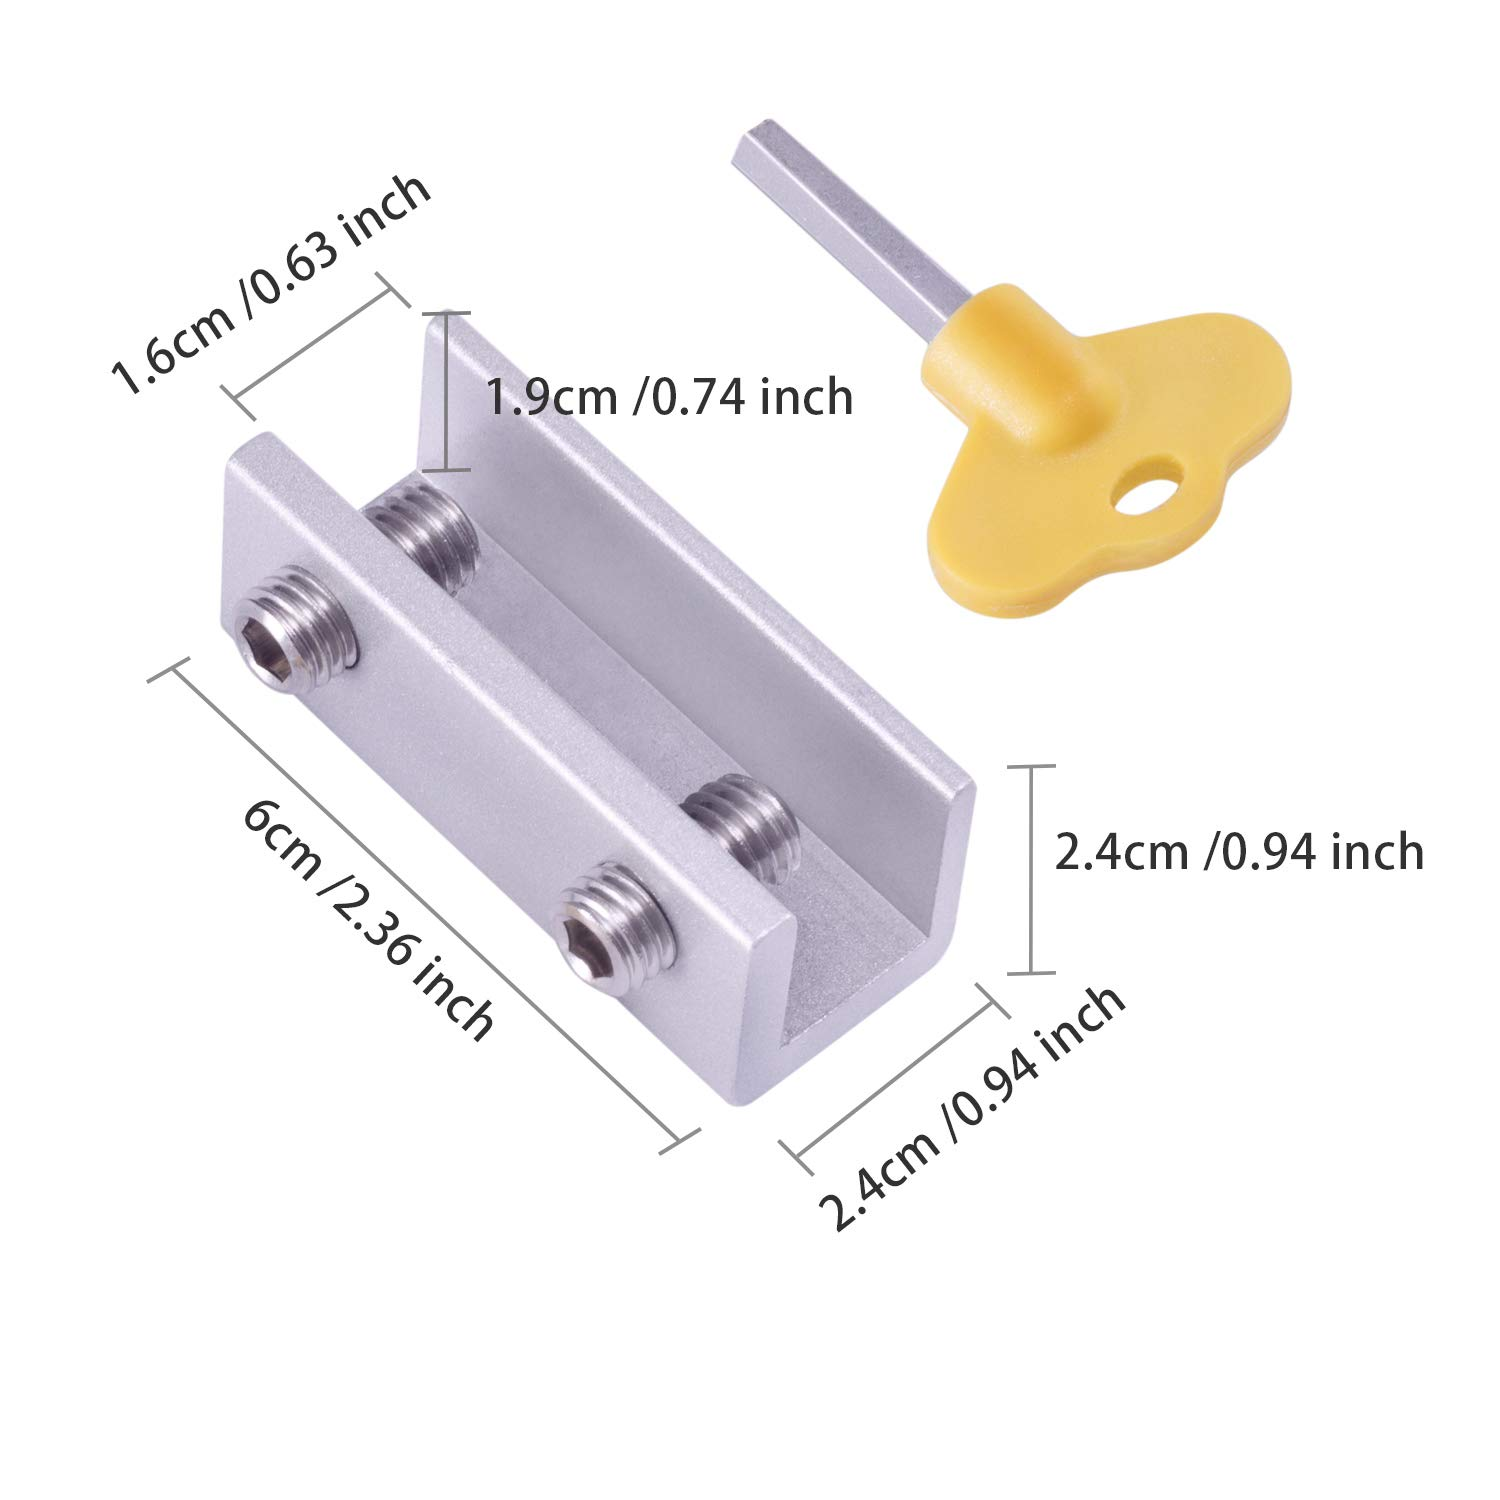 4 Single Hole and 2 Double Hole Favourde 6 Pieces Adjustable Sliding Window Locks Stops Aluminum Alloy Door Frame Security Lock with Keys